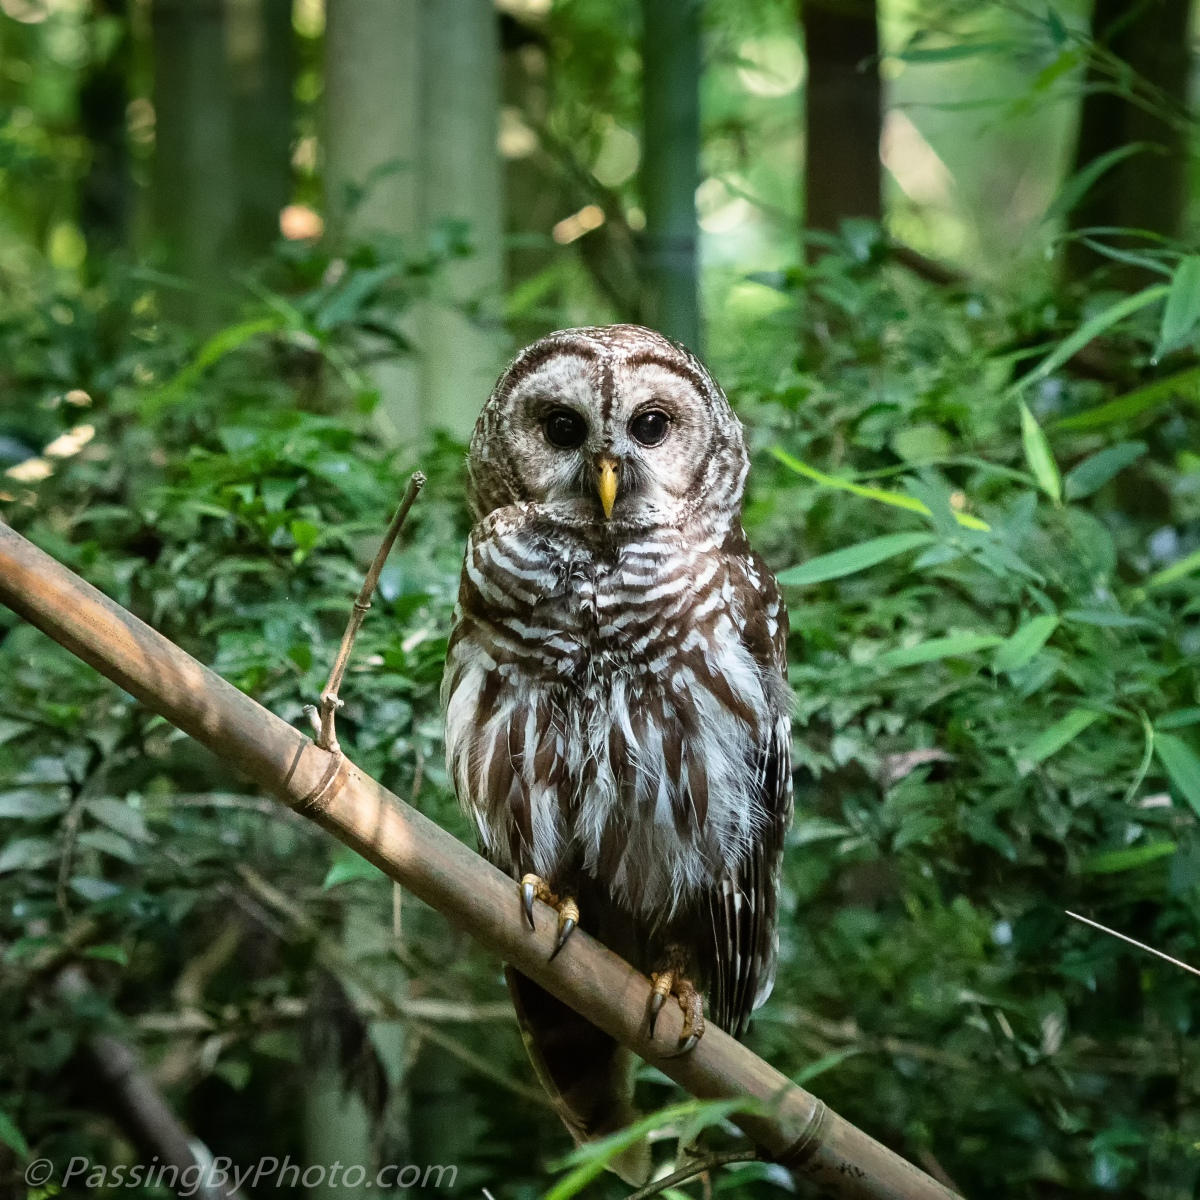 Barred Owl in Bamboo Grove